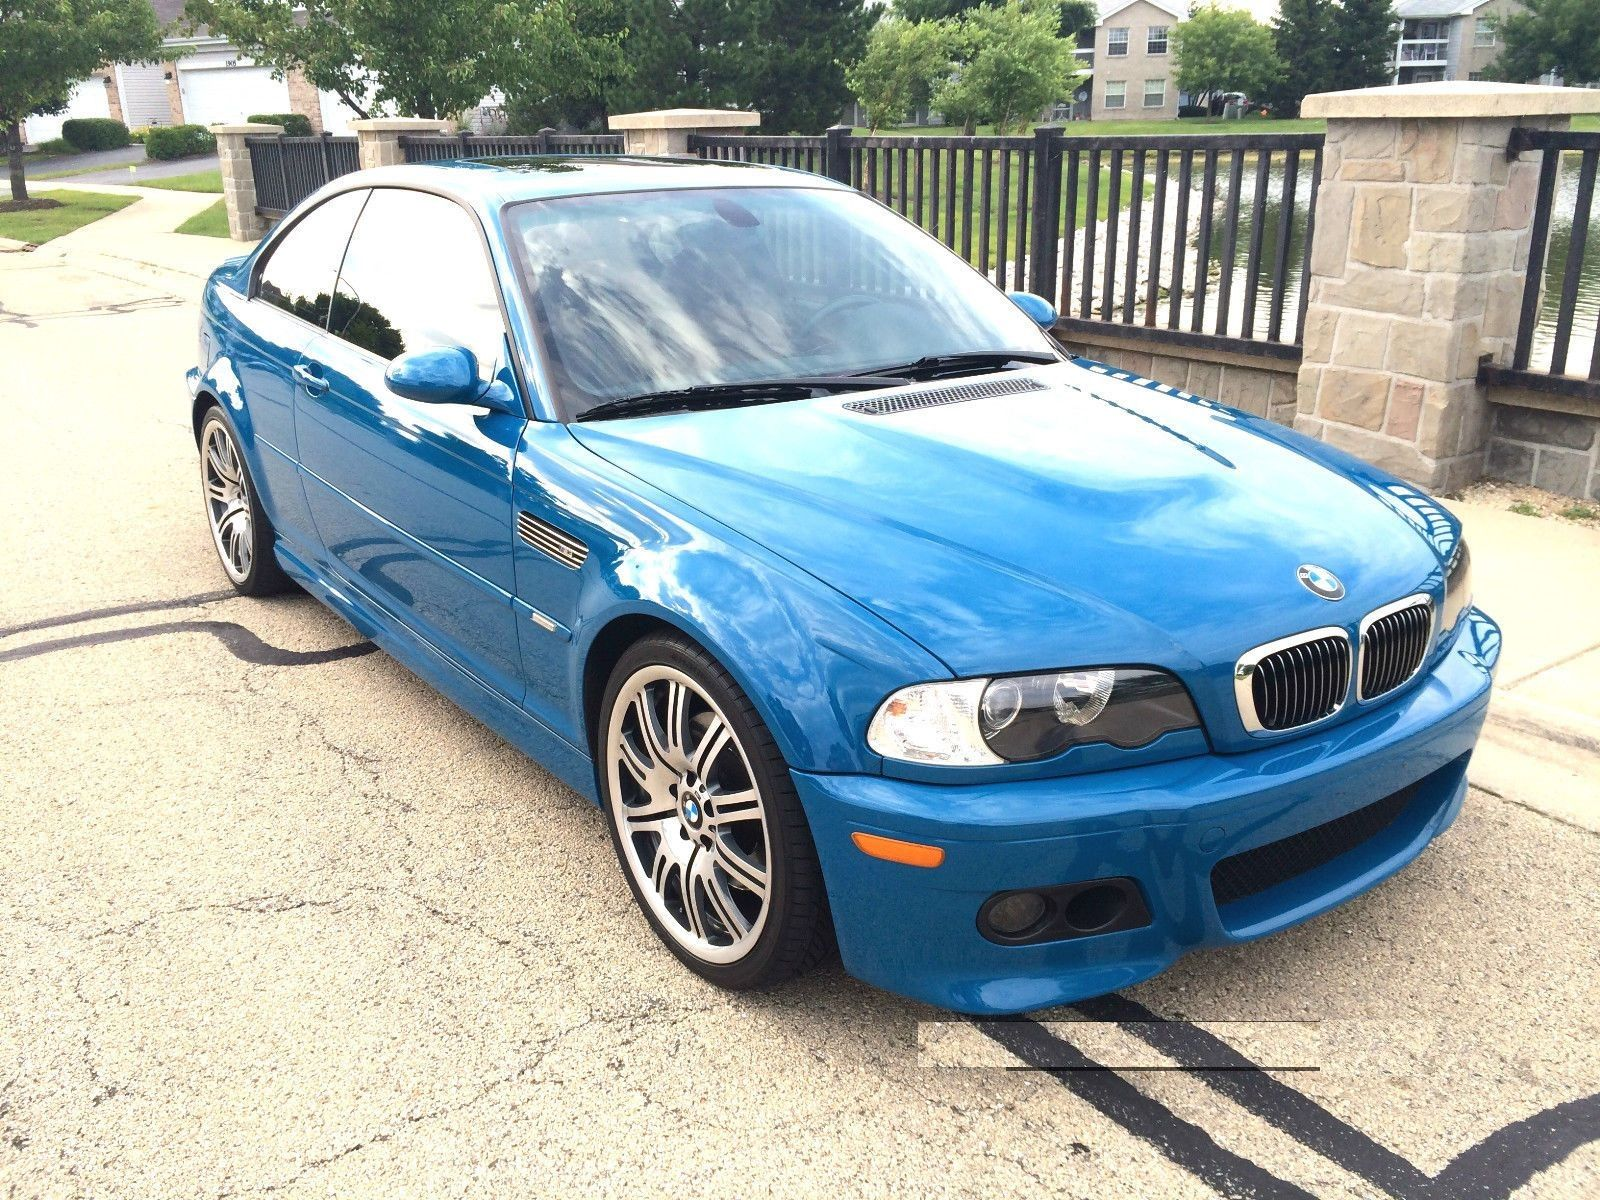 Best Prices On Used BMW M3 E46 SMG For Sale Online Listing Of The ...